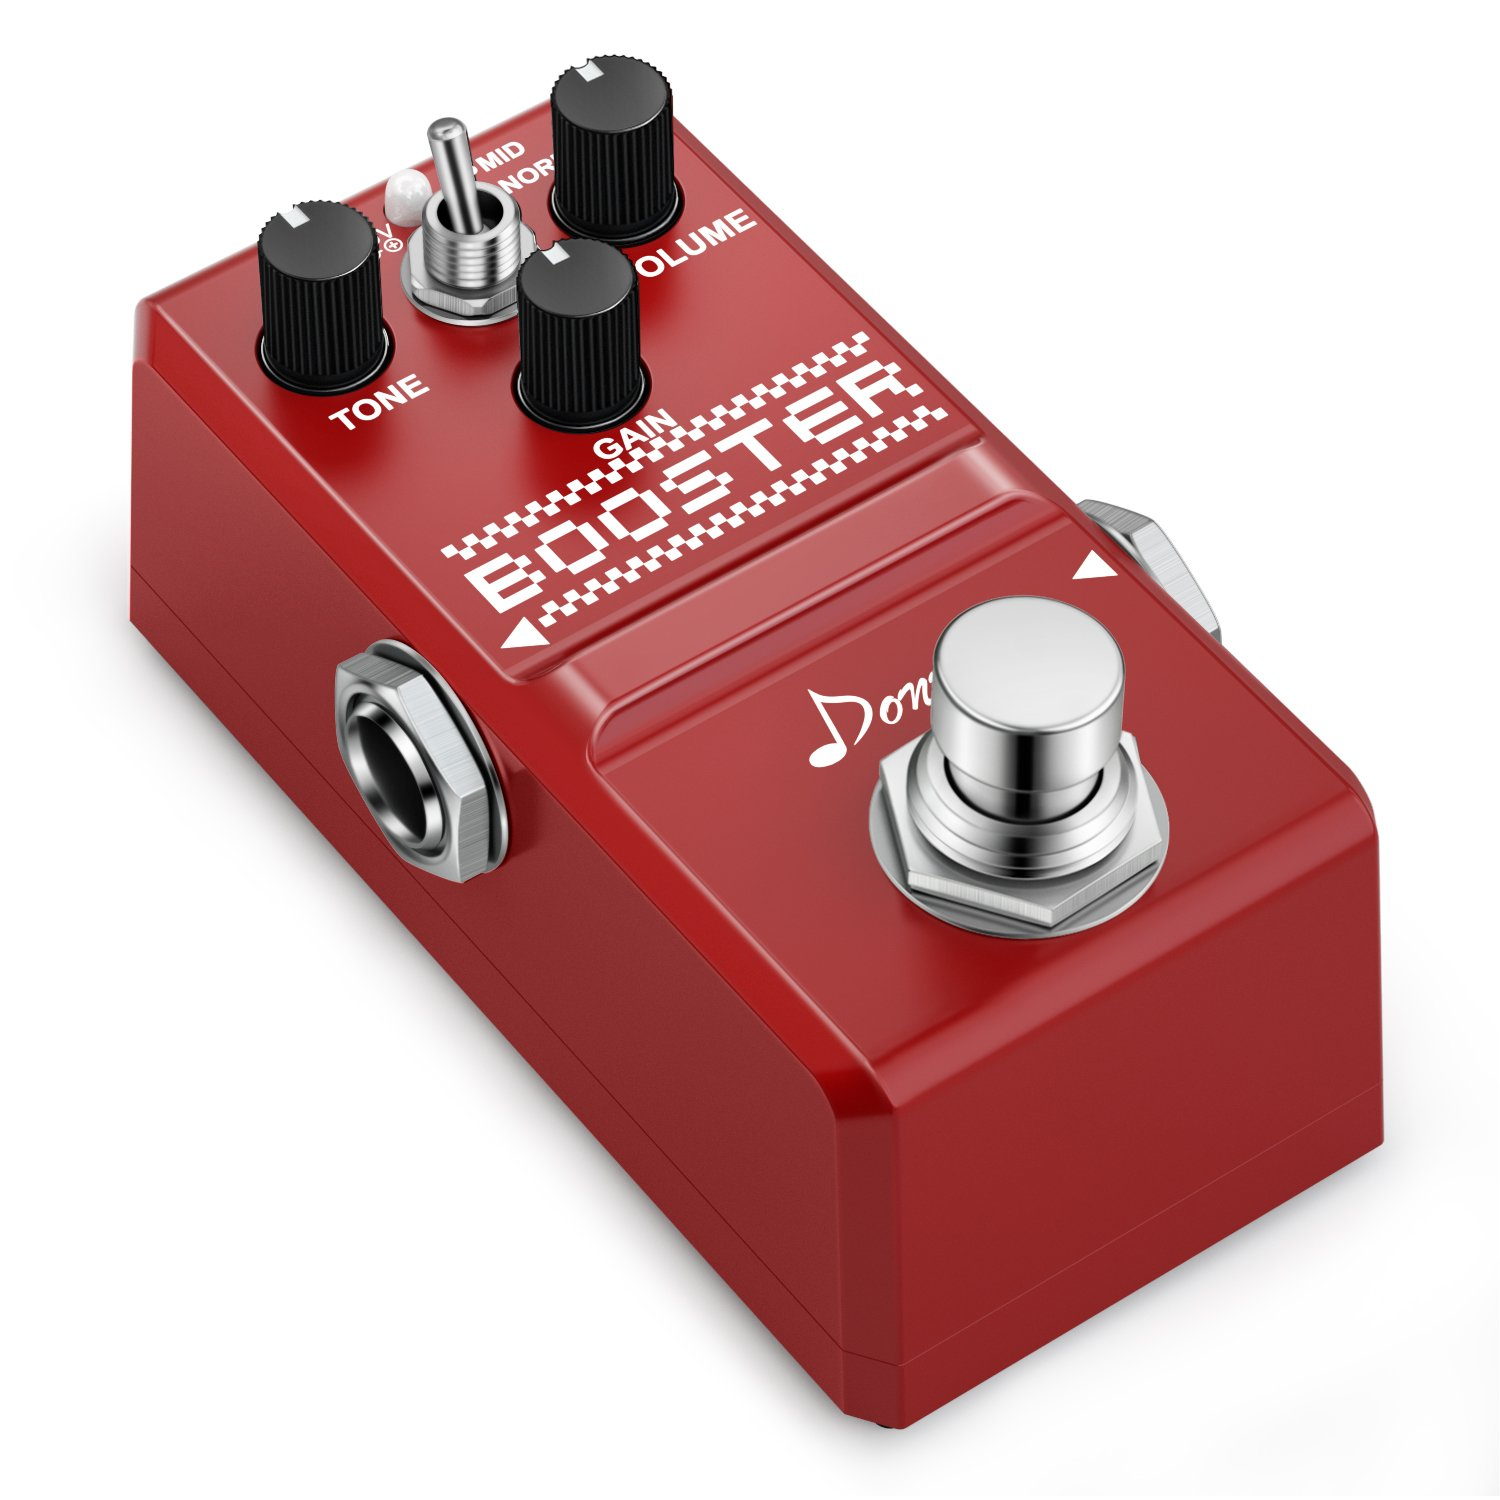 Top 10 Best Donner Guitar Pedals Reviews in 2020 1